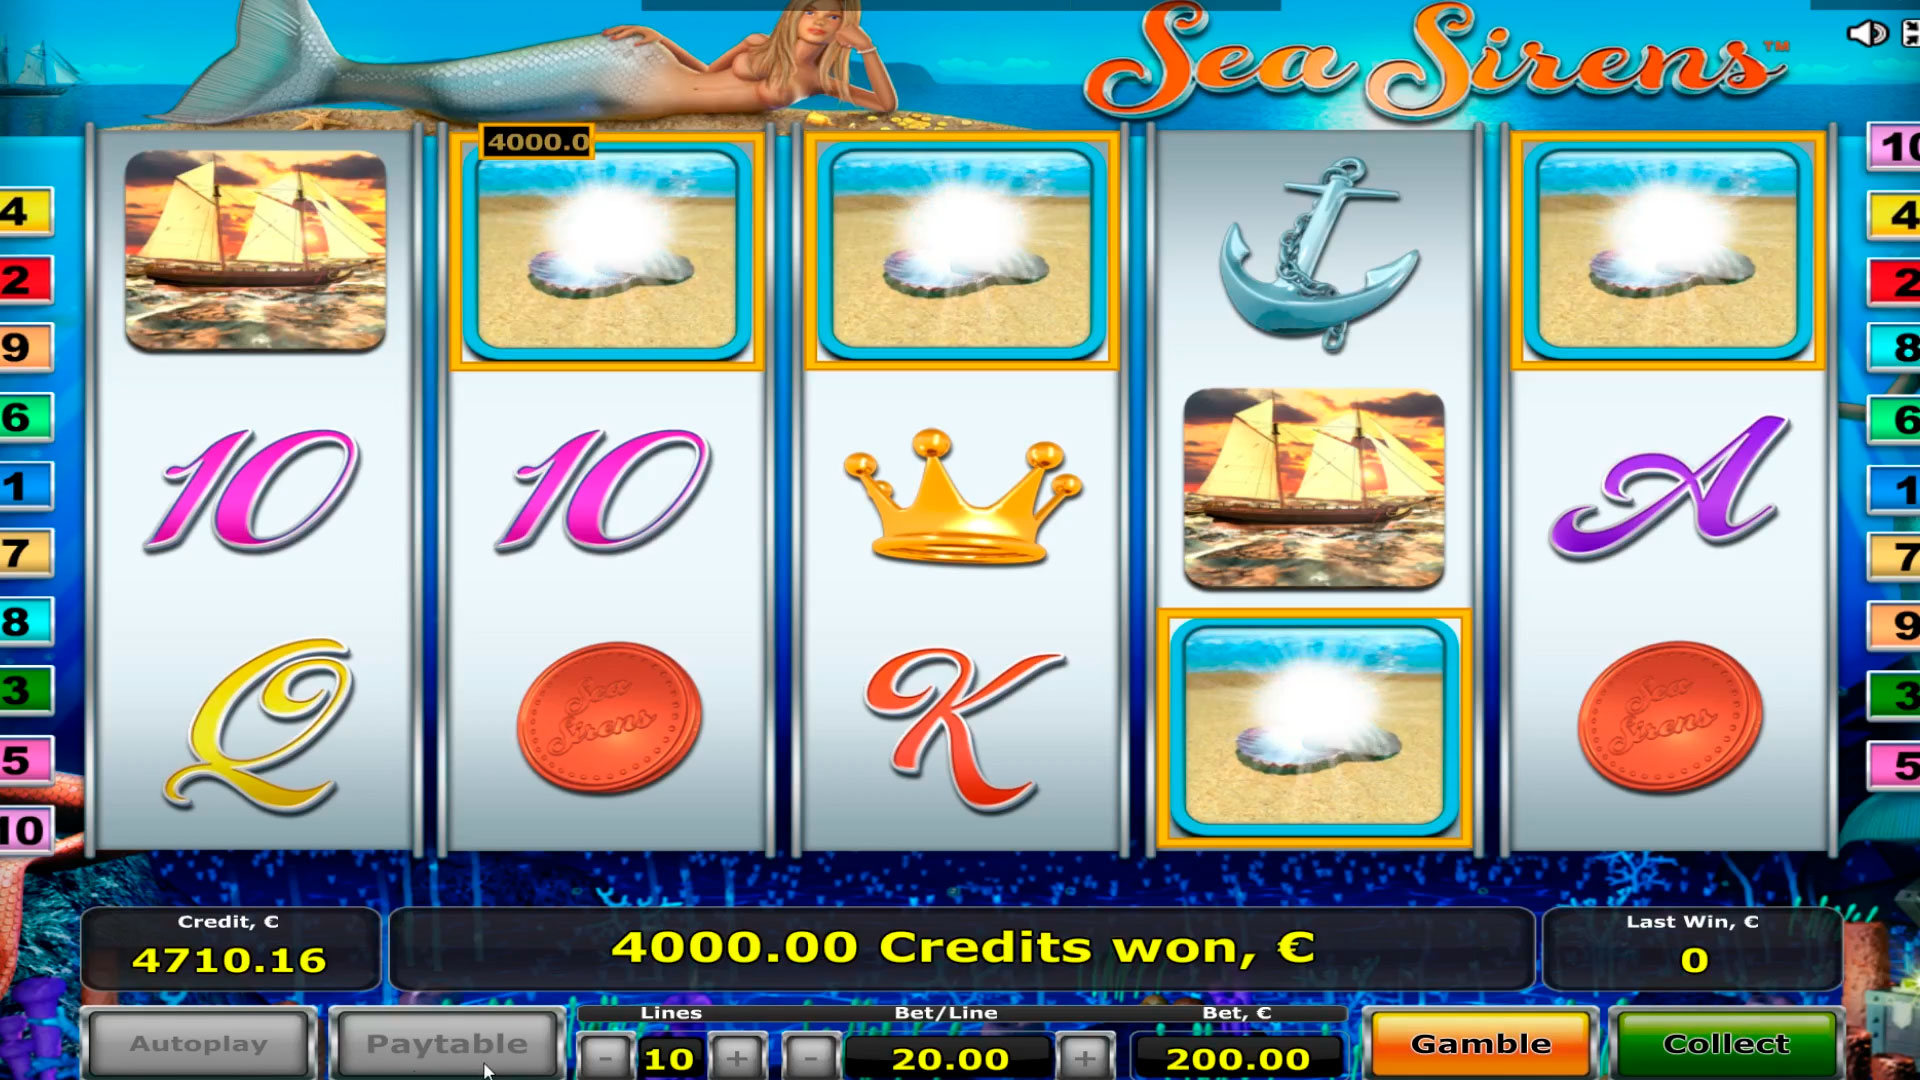 Sea sirens kasino slot big win € 40.000, bonusová hra s retrigerem!